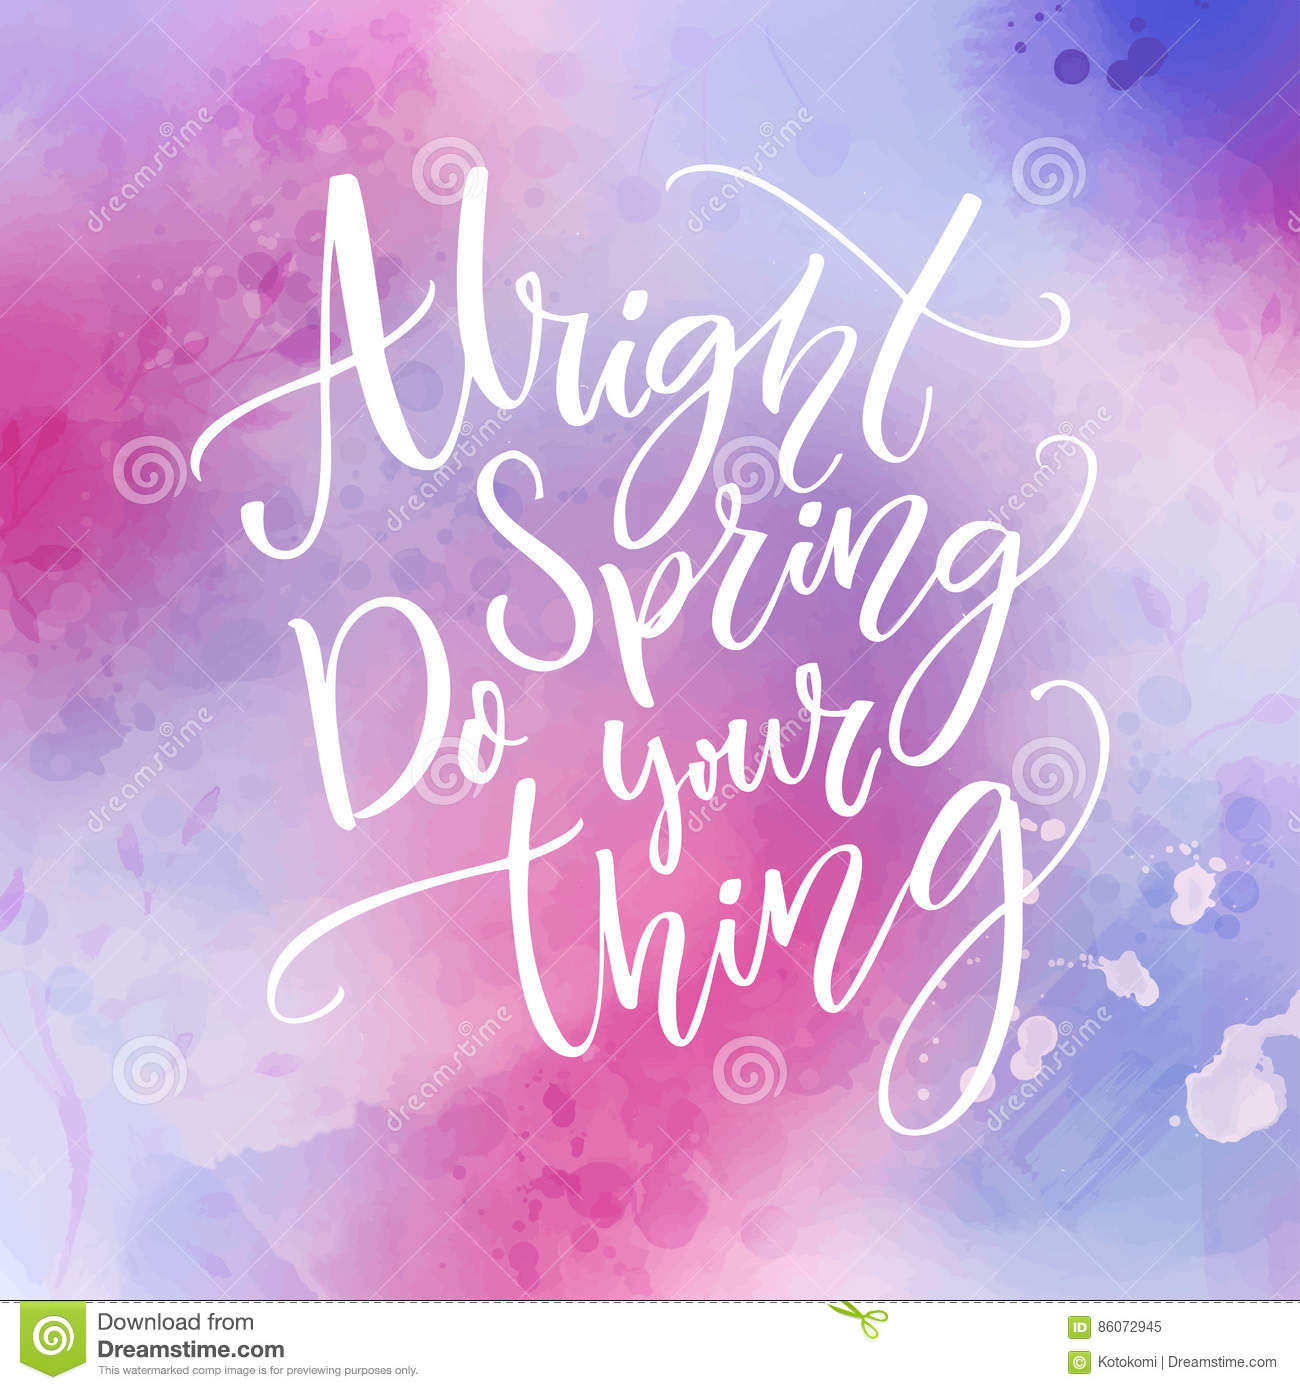 Inspirational Spring Quotes And Sayings: Alright Spring, Do Your Thing. Funny Inspirational Quote